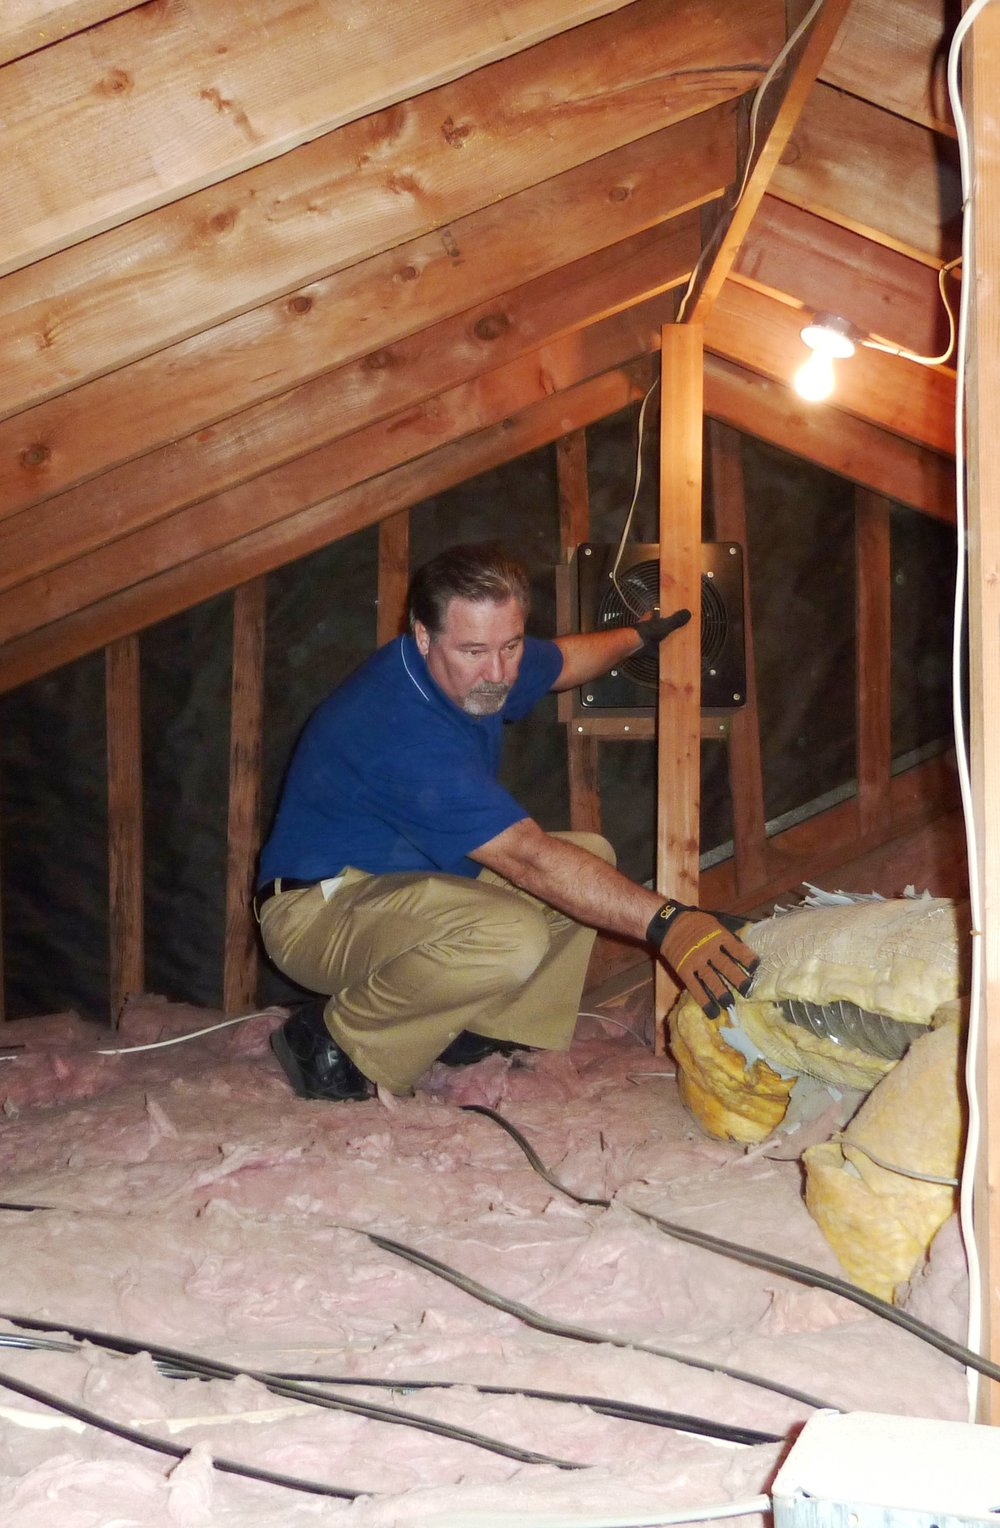 Discovering deteriorating insulation on ducting in the attic